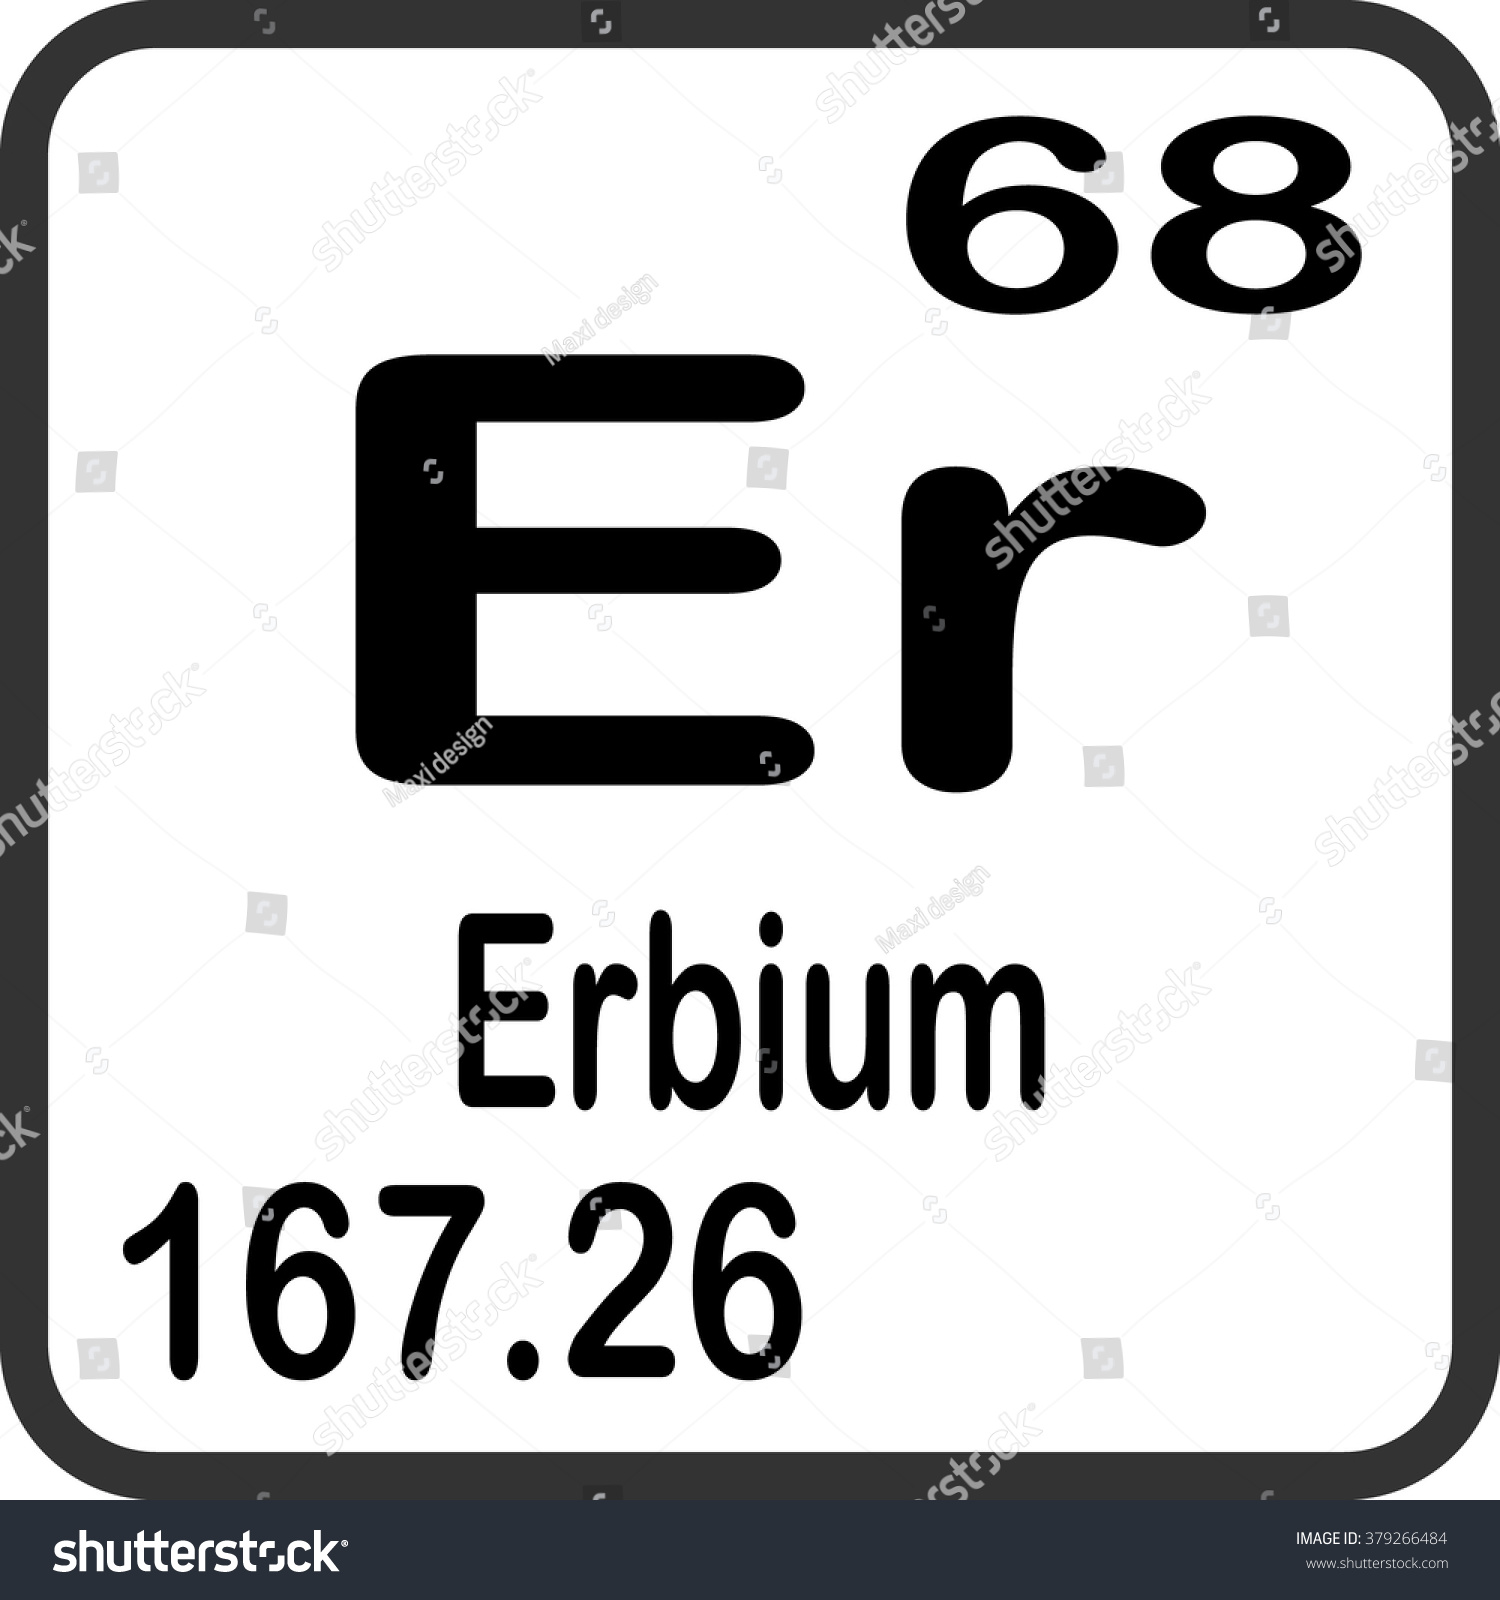 Erbium symbol periodic table gallery periodic table images erbium symbol periodic table gallery periodic table images erbium symbol periodic table gallery periodic table images gamestrikefo Image collections